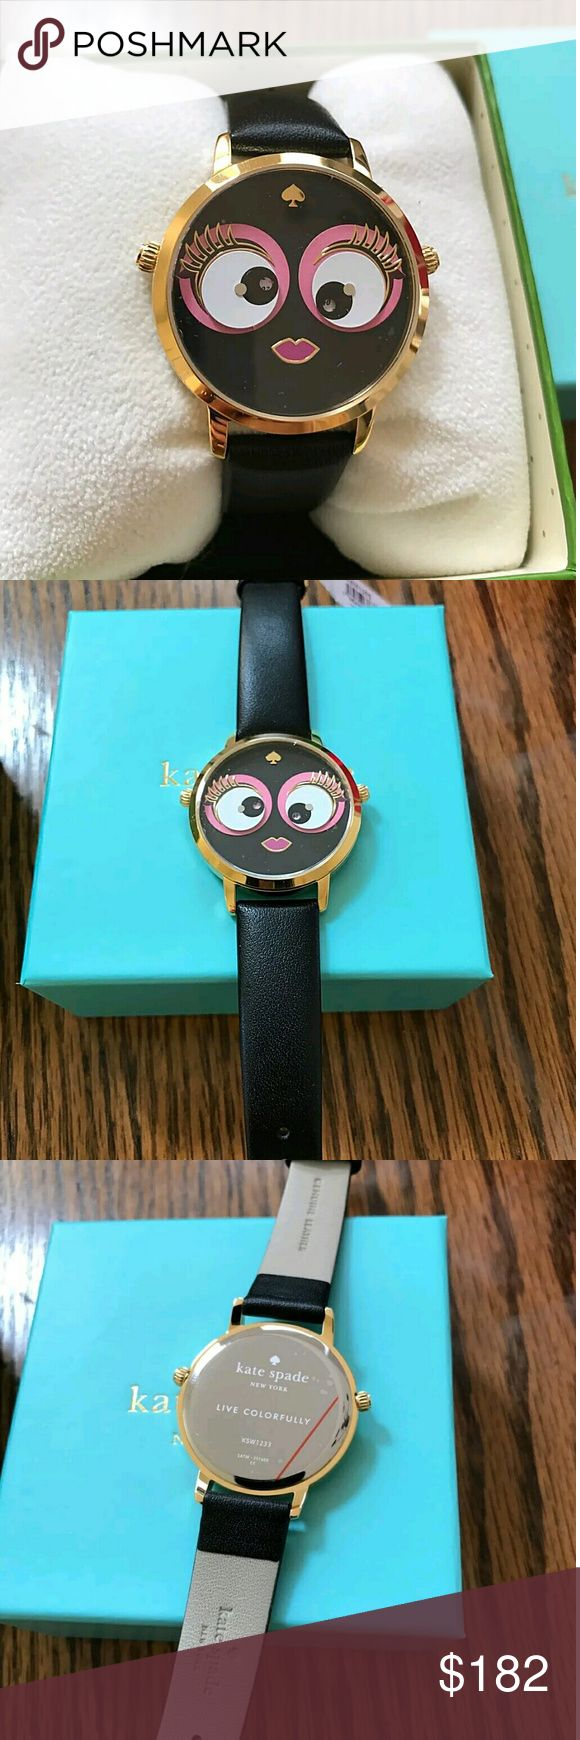 Brand NWT kate spade metro leather ladies watch Brand NWT kate spade metro leather ladies watch.    FRIM PRICE FIRM PRICE?  $182.00  . AUTHENTIC WATCH?  . AUTHENTIC BOX?  . AUTHENTIC MANUAL?    SHIPPING?  PLEASE ALLOW 3-4 BUSINESS DAYS FOR ME TO SHIPPED IT OFF.I HAVE TO GET IT FROM MY STORE.?   THANK YOU FOR YOUR UNDERSTANDING. Kate Spade Accessories Watches